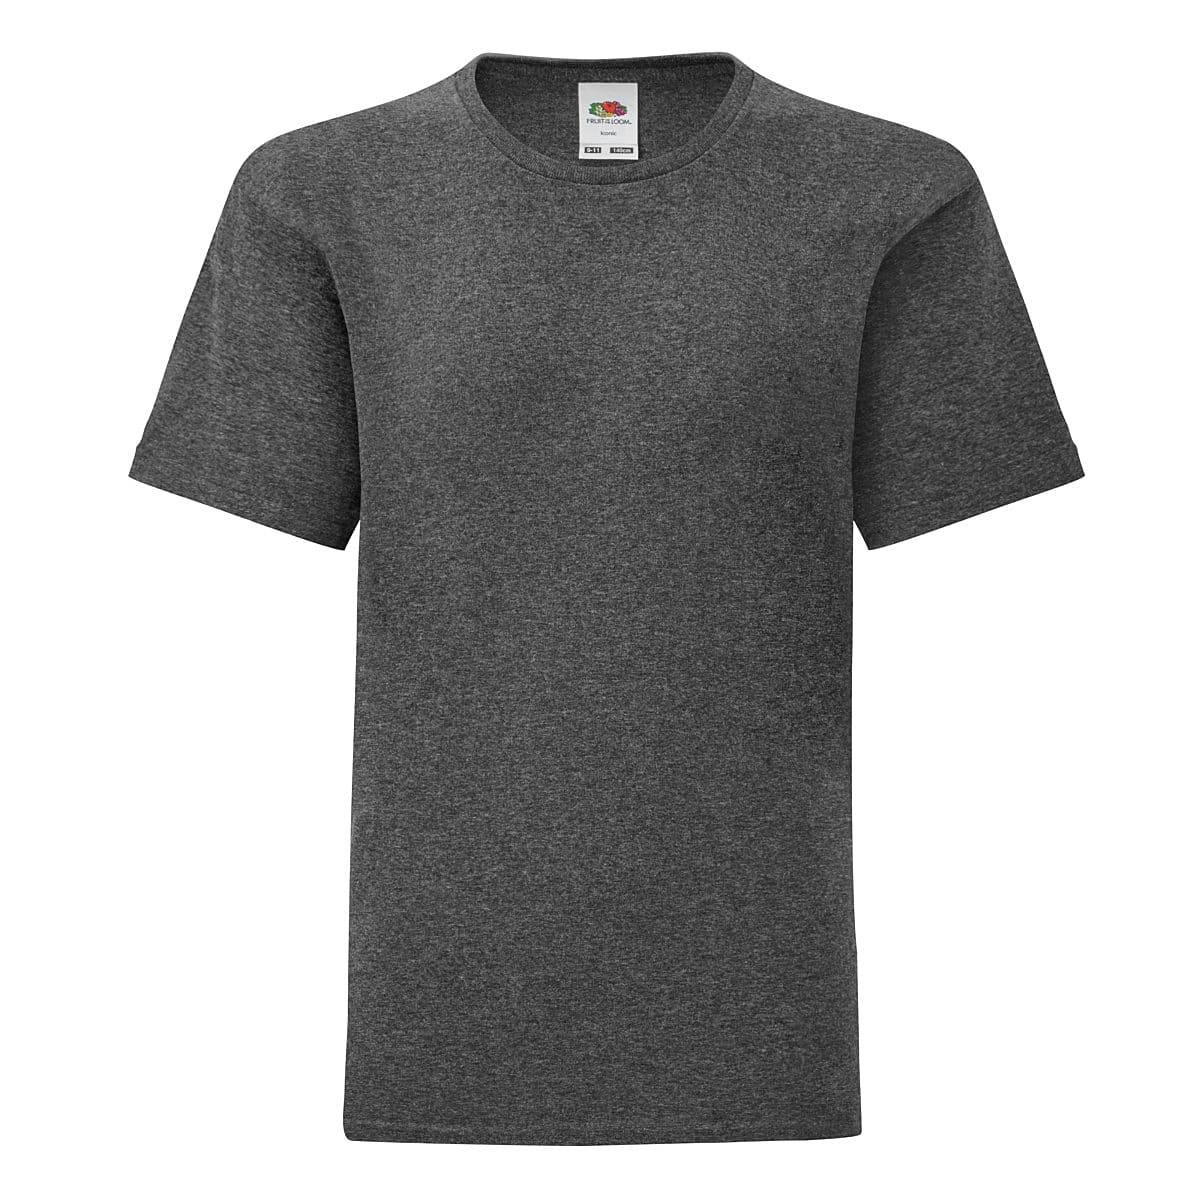 Fruit Of The Loom Kids Iconic T-Shirt in Dark Heather (Product Code: 61023)